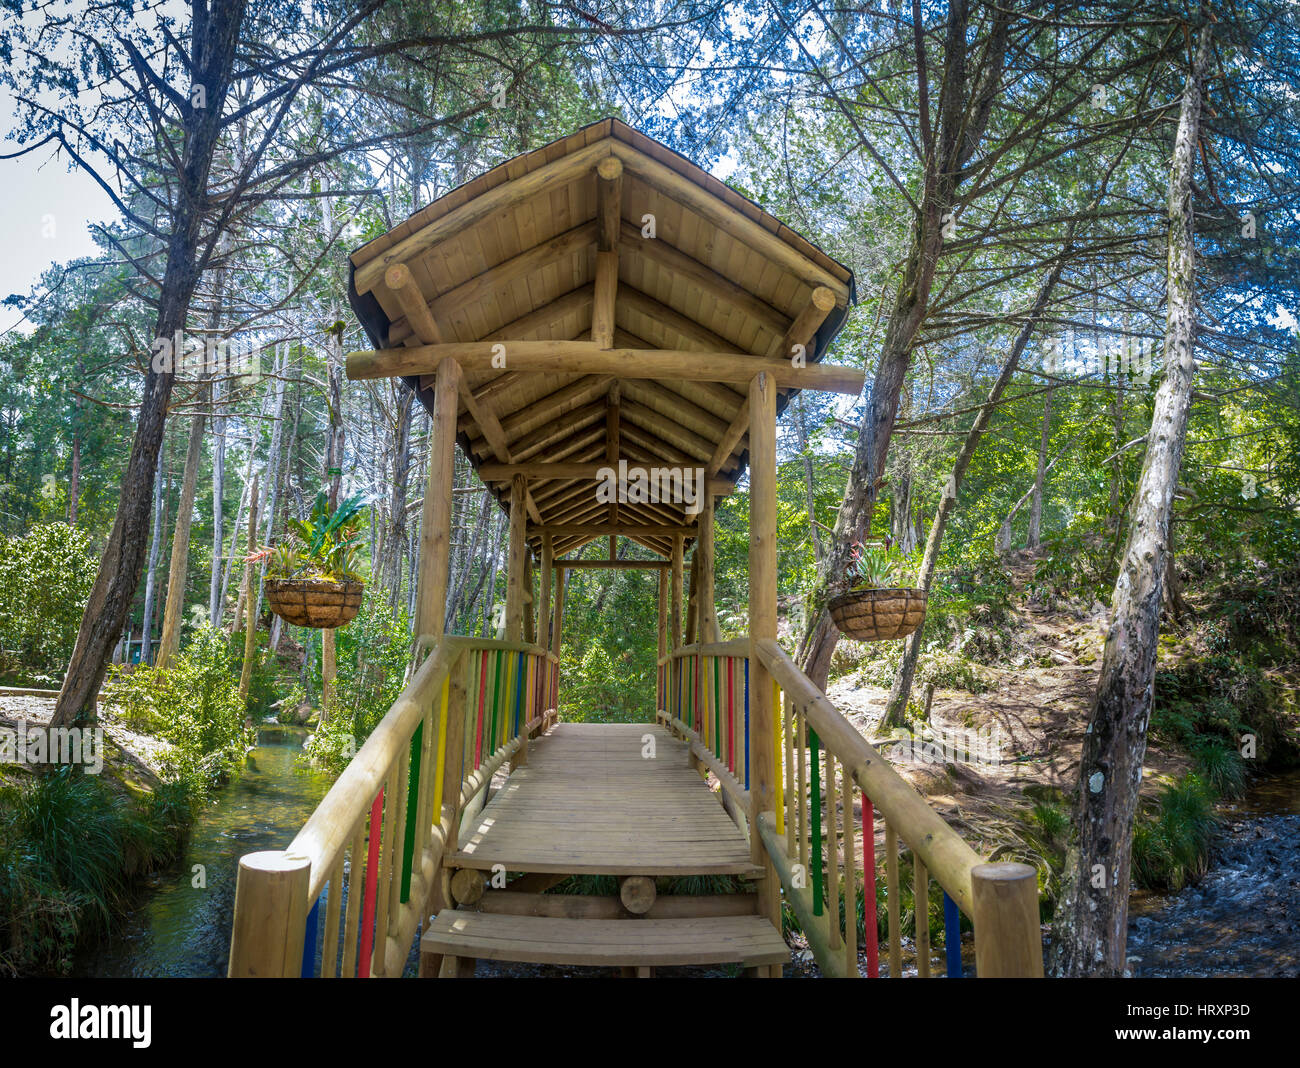 Inside View Of Small Colorful Covered Wooden Bridge Parque Arvi